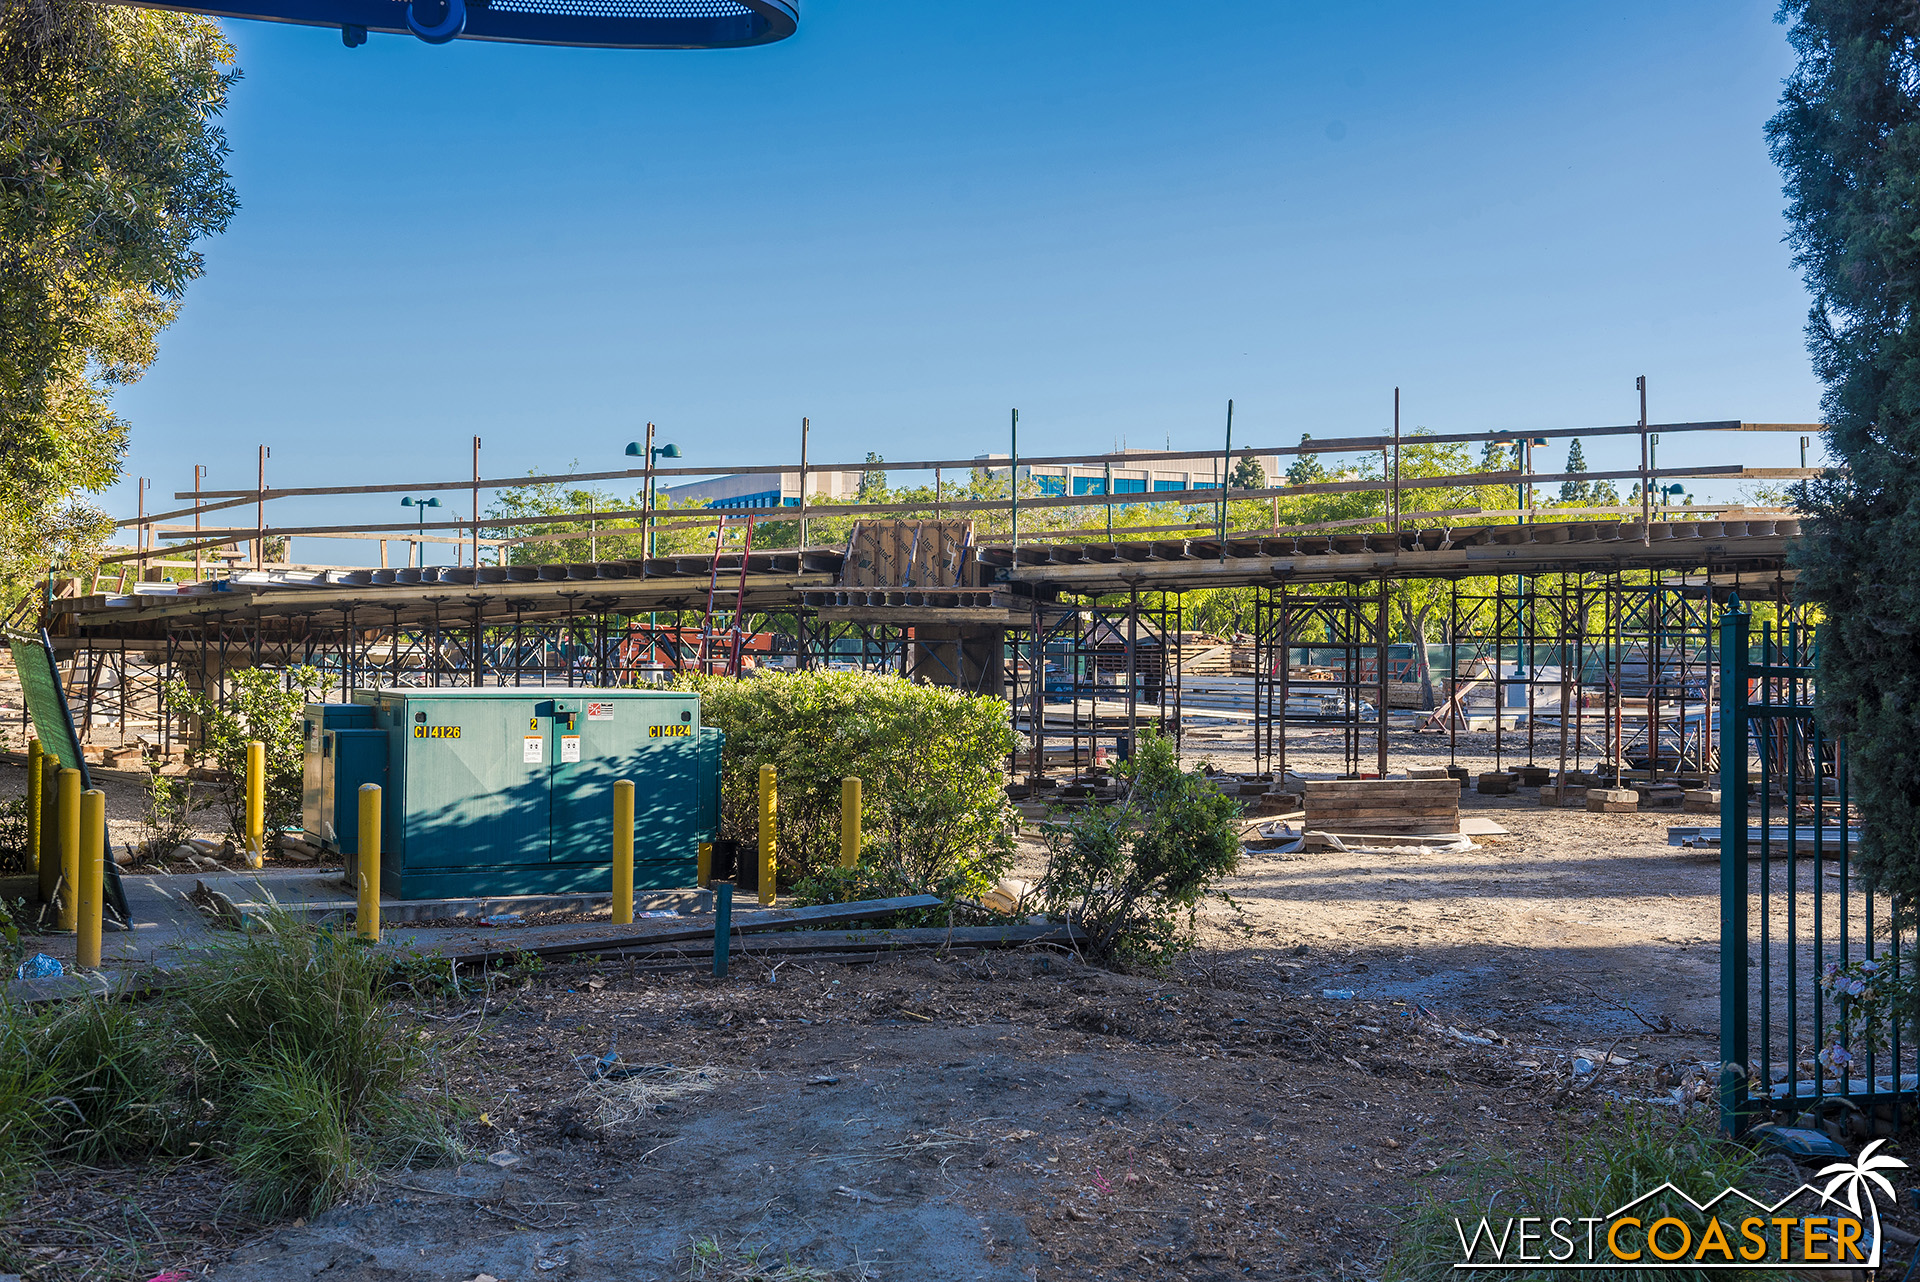 On the Downtown Disney side, a ramp down to the ground from the bridge is starting up now.